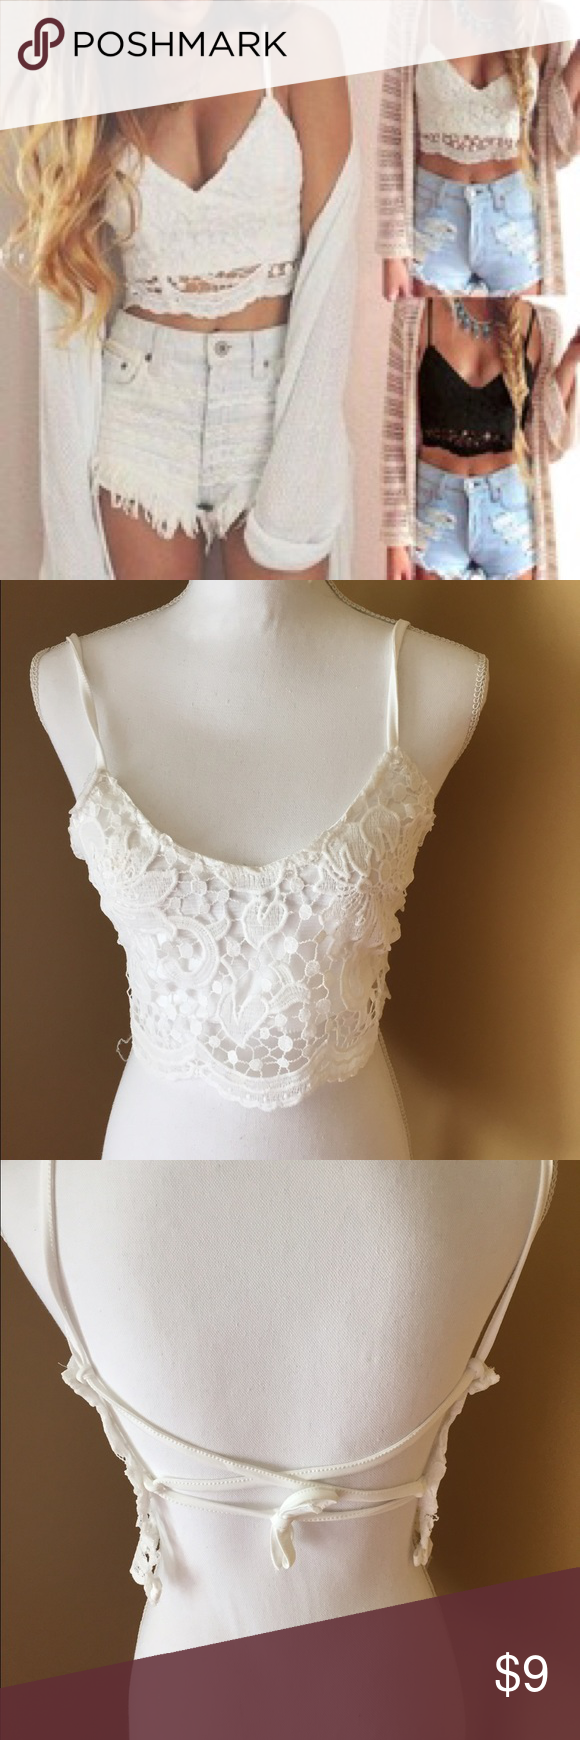 NEW WITHOUT TAGS White lace cross back crop top White crop top with Criss cross back. Has blemishes as shown in the photo. Cannot be seen from far away. Only close up. I have not tried to bleach it yet. Measurements: chest 33.6-34.3  inches and le thing 11.7 inches. The item did not fit my mannequin so I could not correctly Criss cross the back straps. Two straps and three holes for them. Be creative. Tag says size L. That is incorrect. Item has blemished on inside but cannot be seen when…